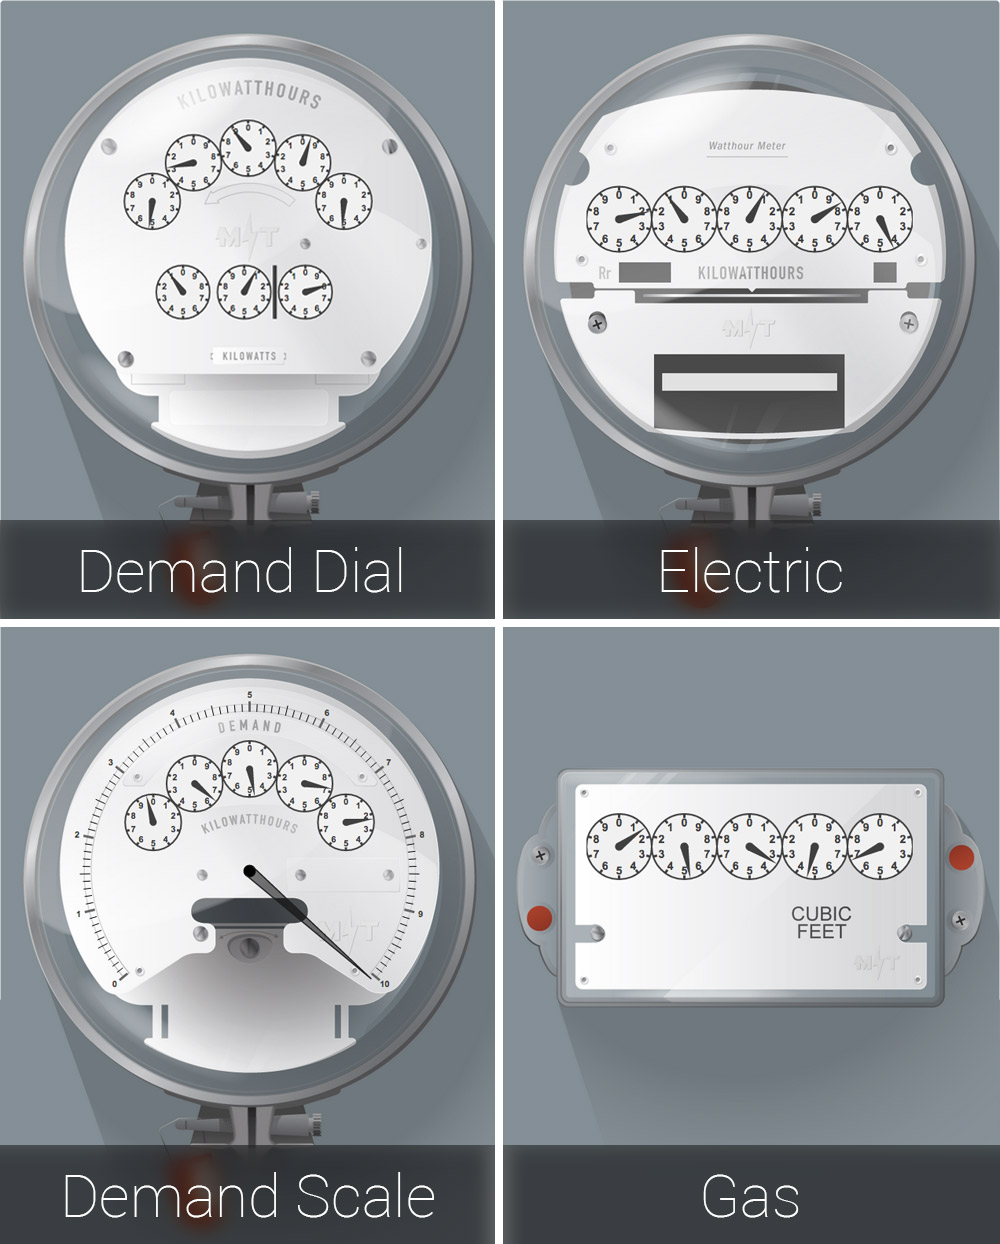 Electric Meter Quiz Electricity And Magnetism Proprofs Pictures Of